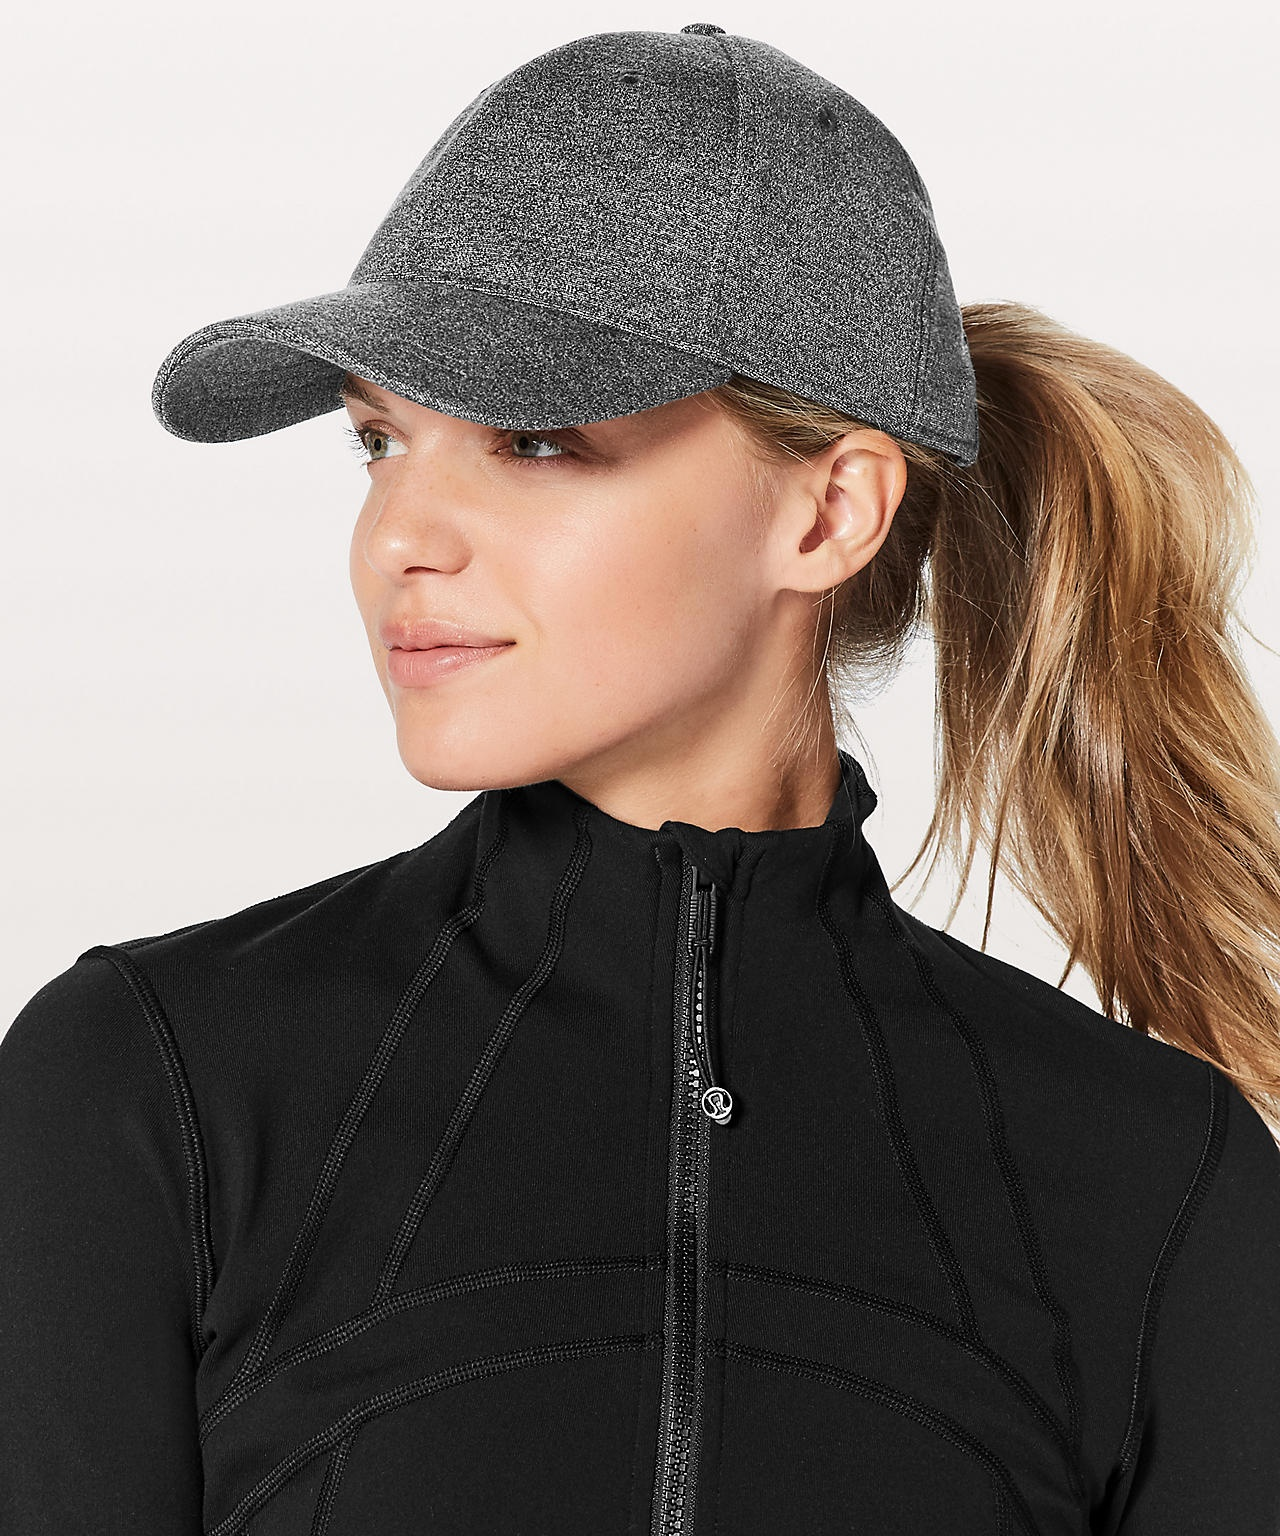 Would it look wrong if a guy wore a women s fit hat  - Quora 48f728526ccd